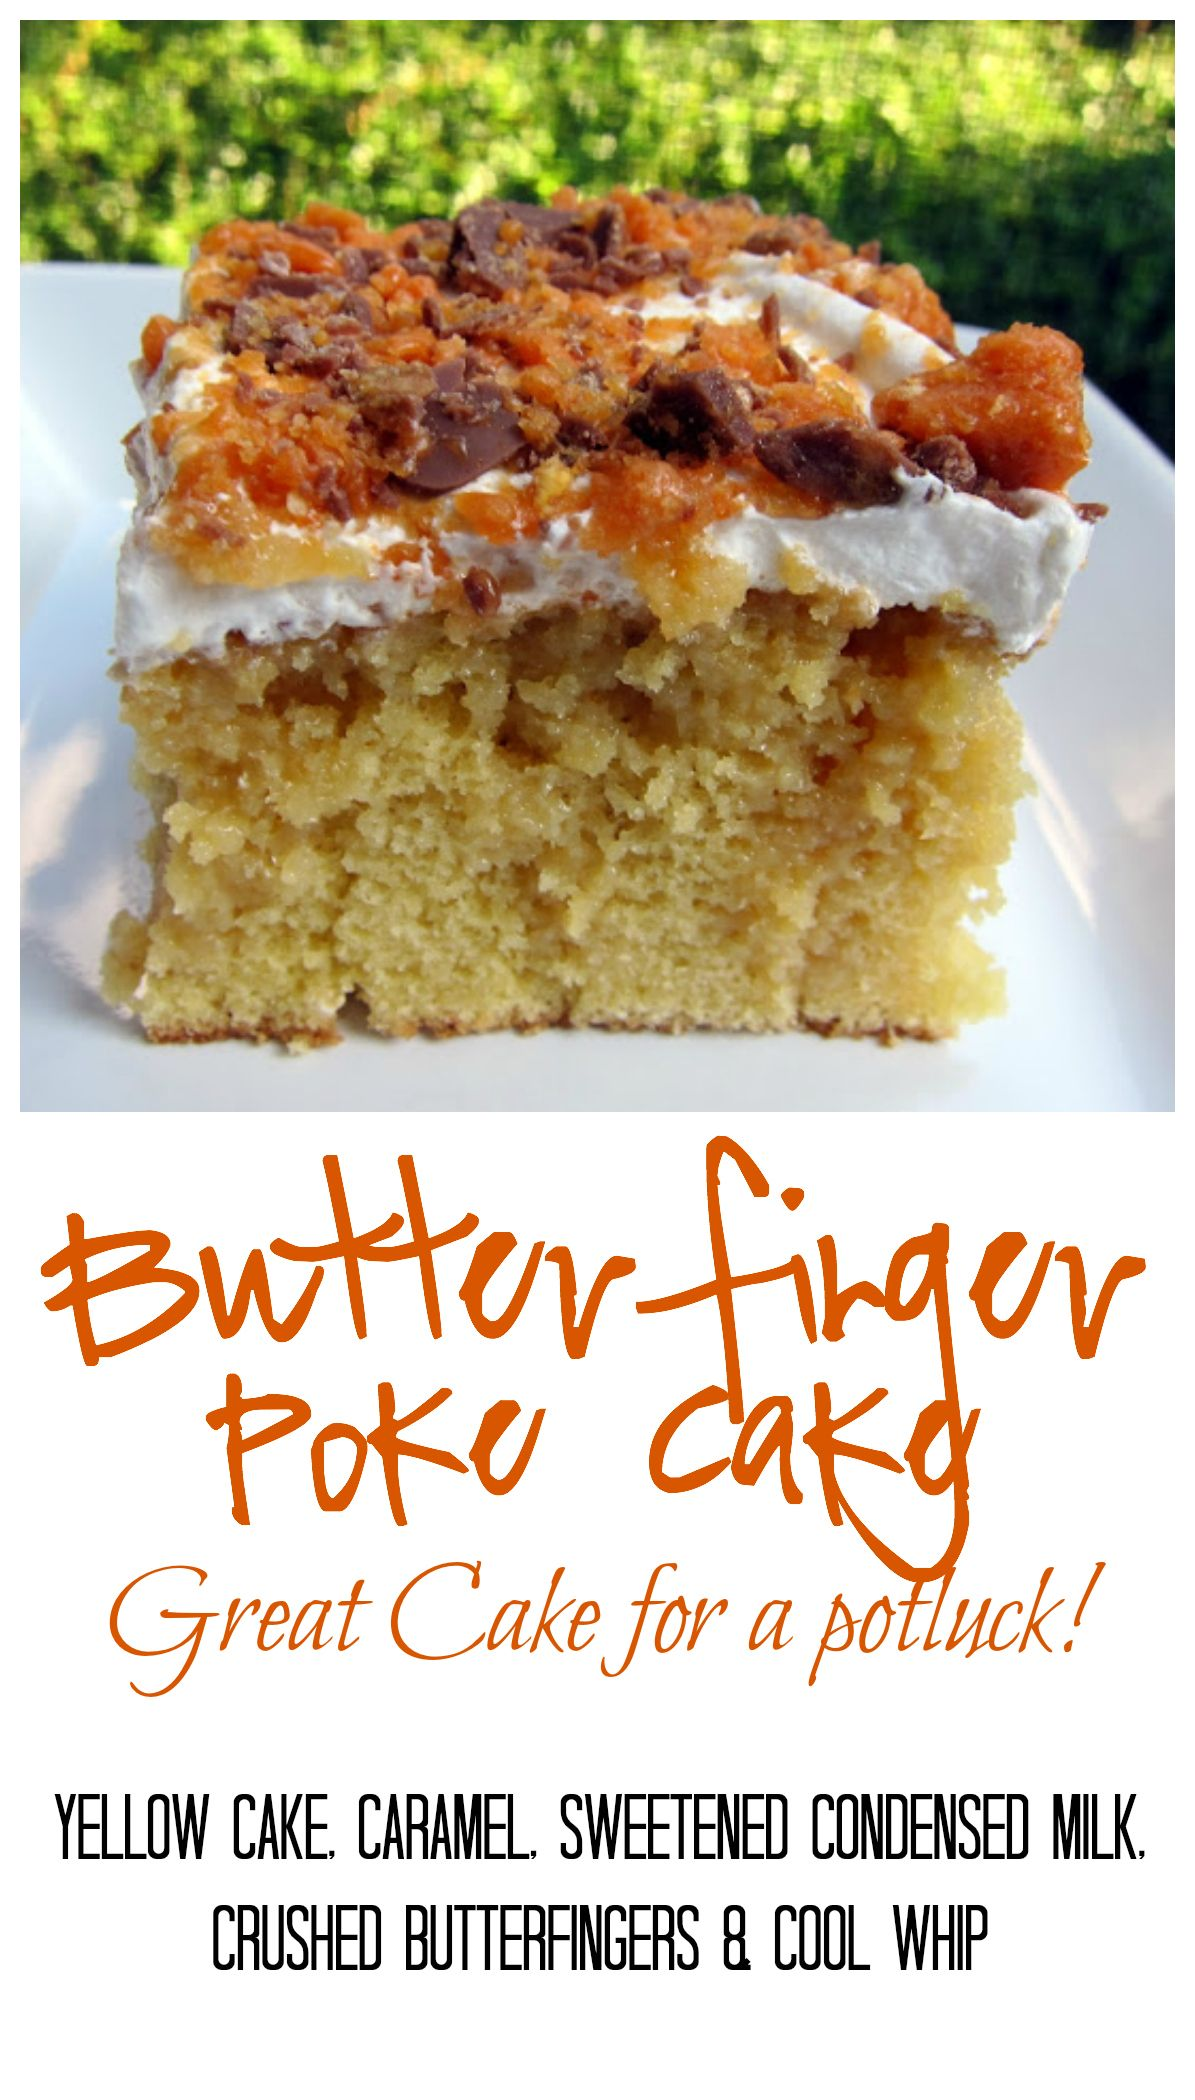 Butterfinger Poke Cake Yellow Cake Caramel Sweetened Condensed Milk Crushed Butterfingers And Cool Whip Great Butterfinger Cake Cake Recipes Savoury Cake